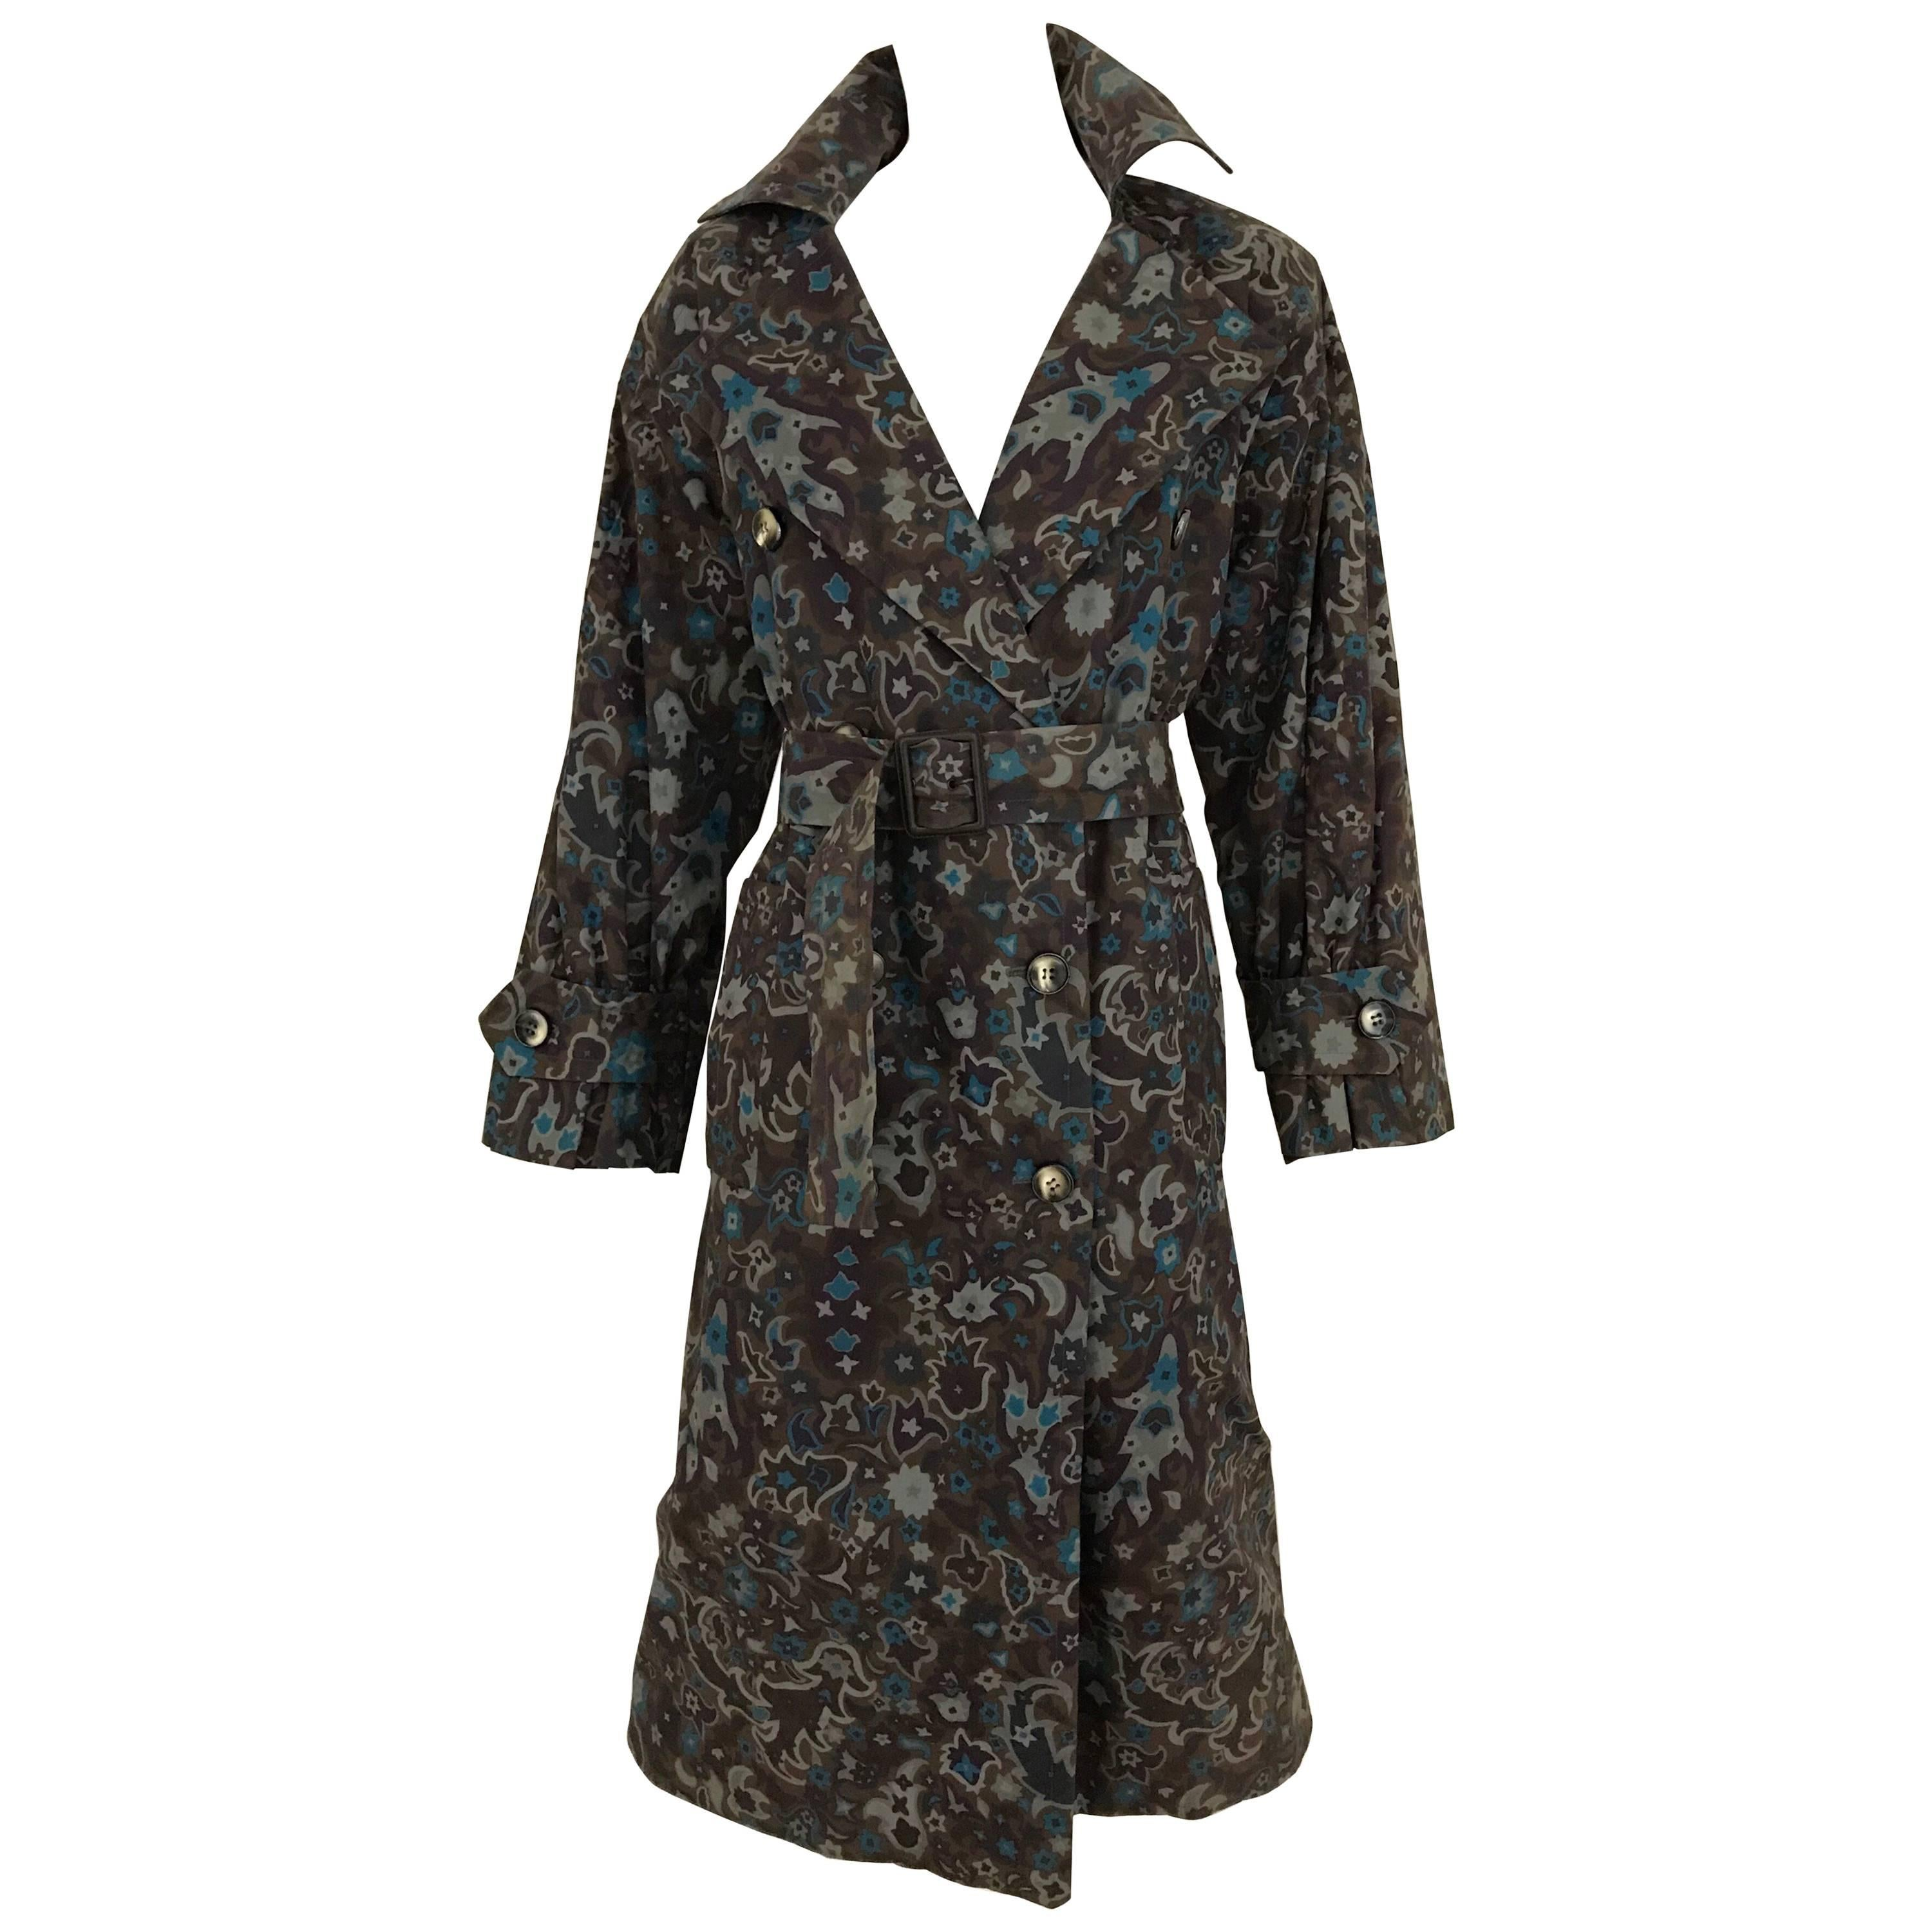 1970s Saint Laurent Brown, Teal and Grey Paisley Print vintage Trench Coat